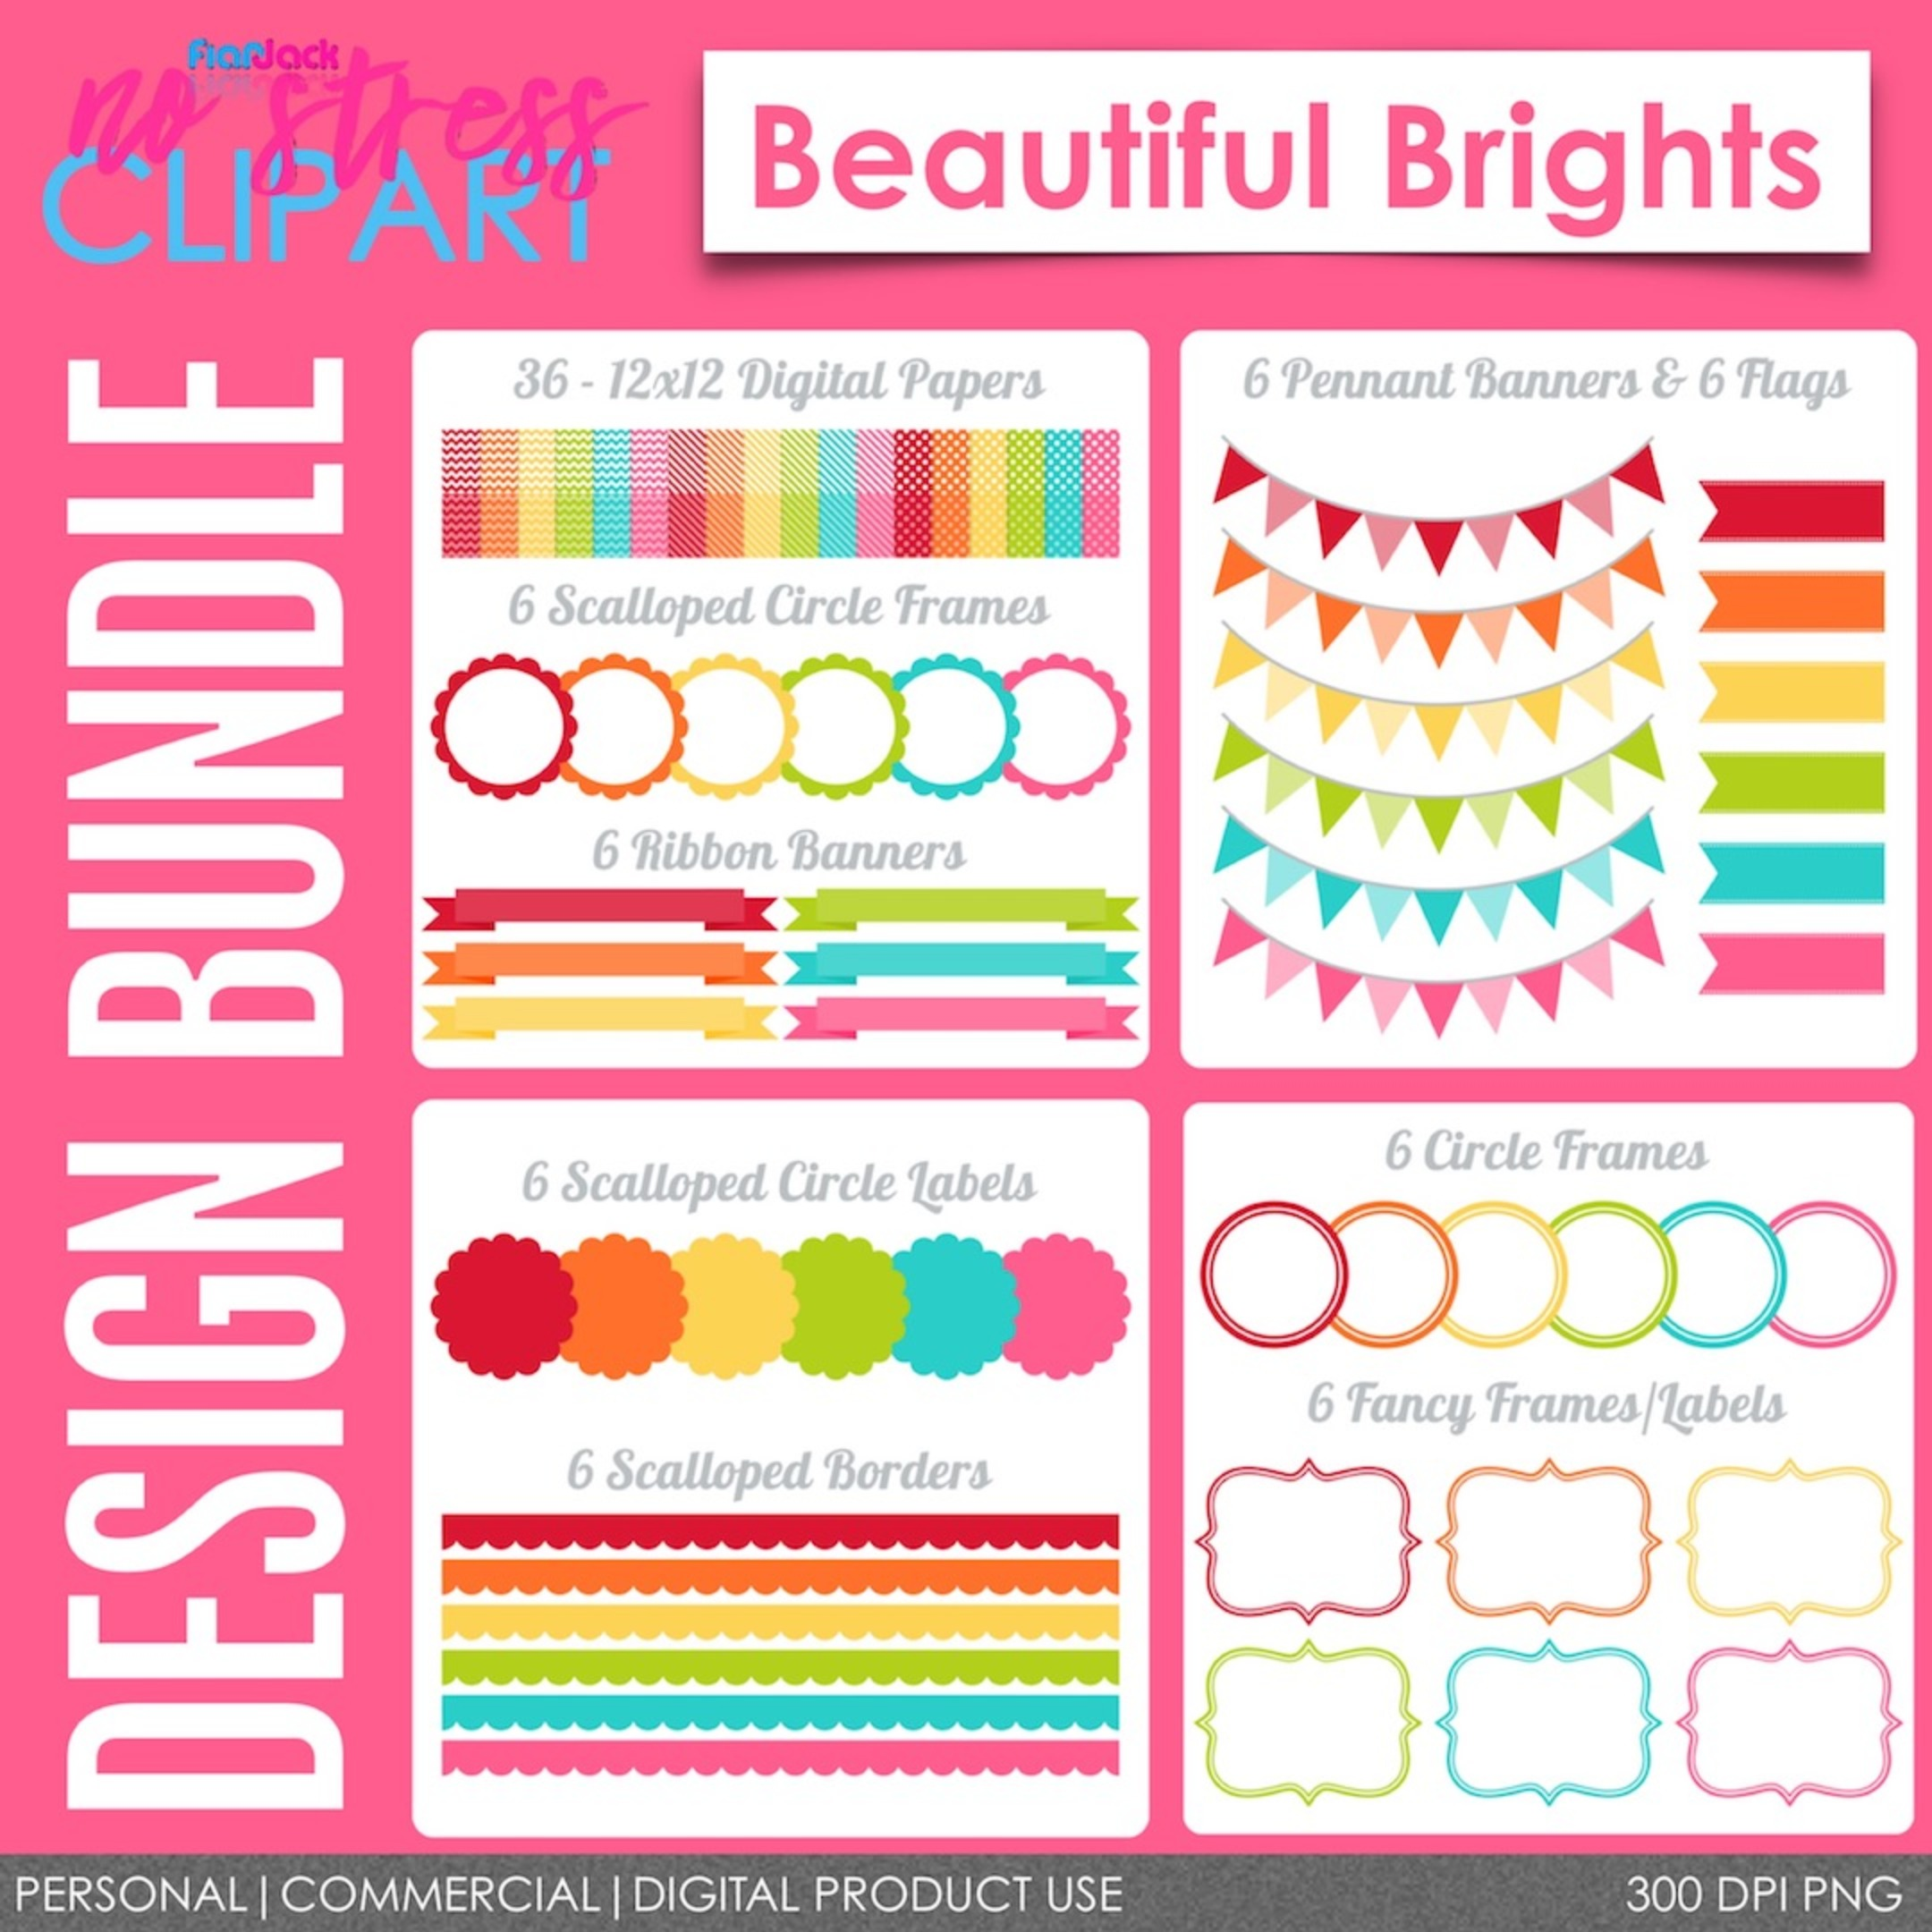 Beautiful Brights Design Bundle